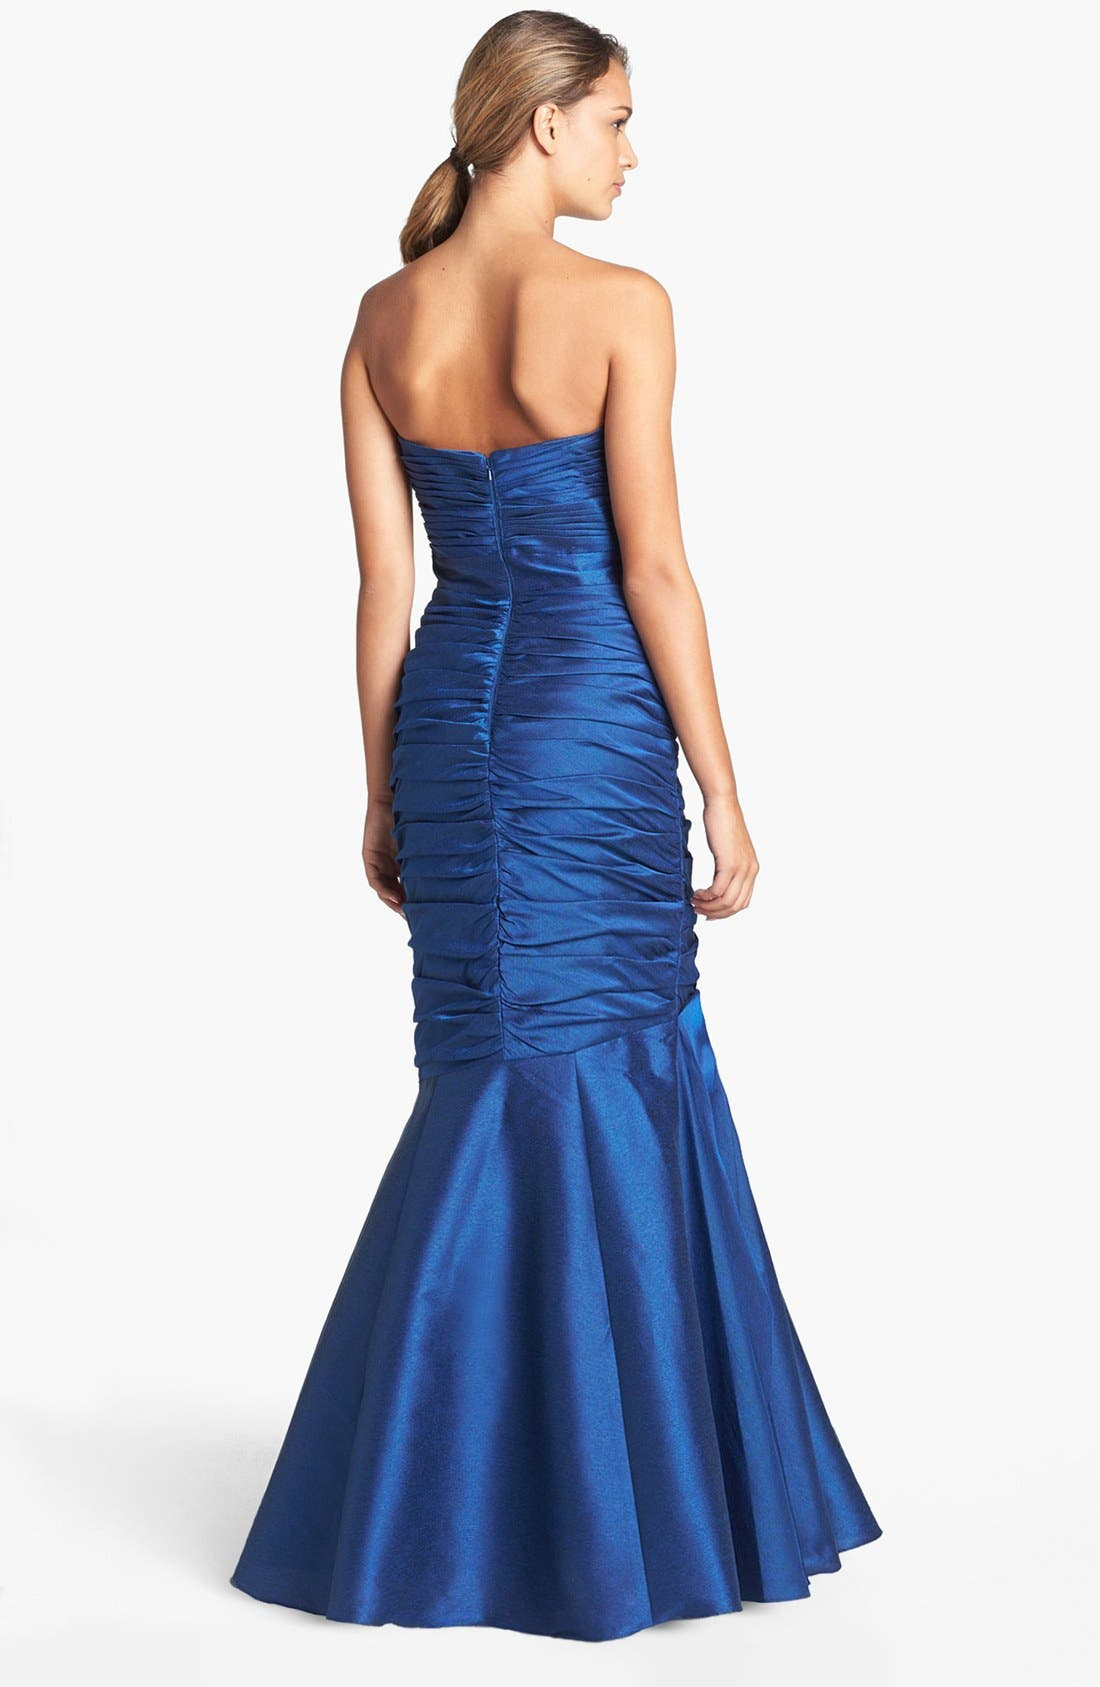 Alternate Image 2  - ML Monique Lhuillier Strapless Ruched Faille Mermaid Gown (Nordstrom Exclusive)